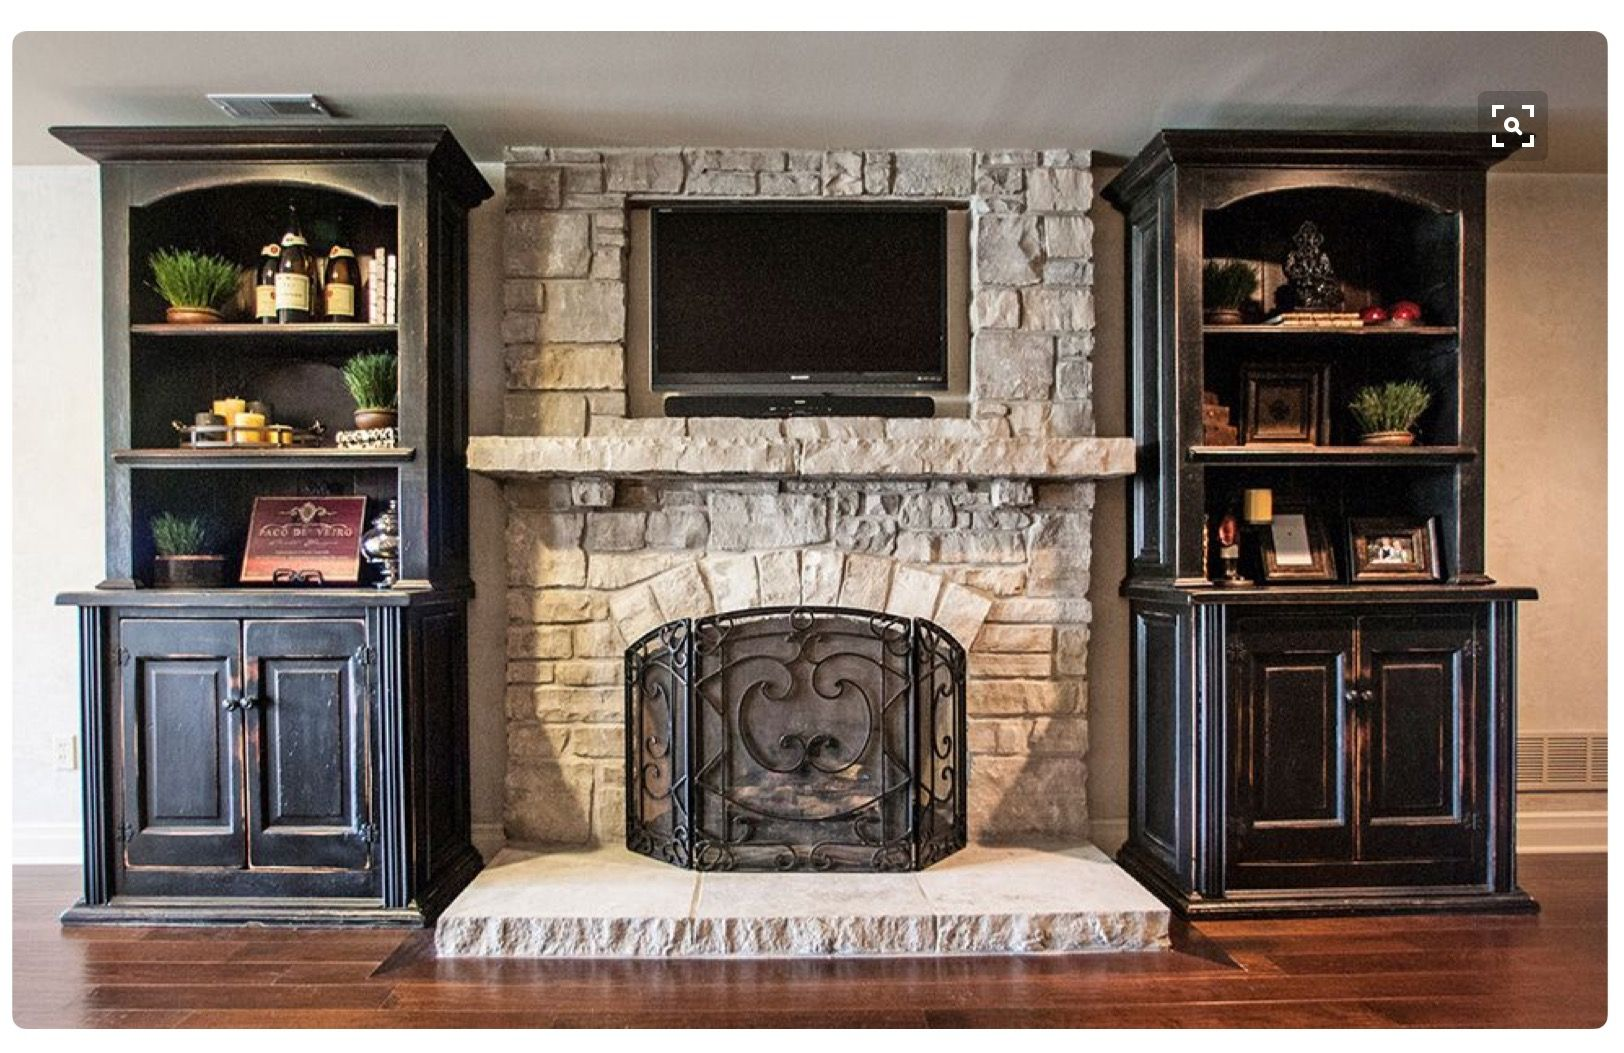 Stone Fireplace With Tv And Wooden Shelves On Both Sides